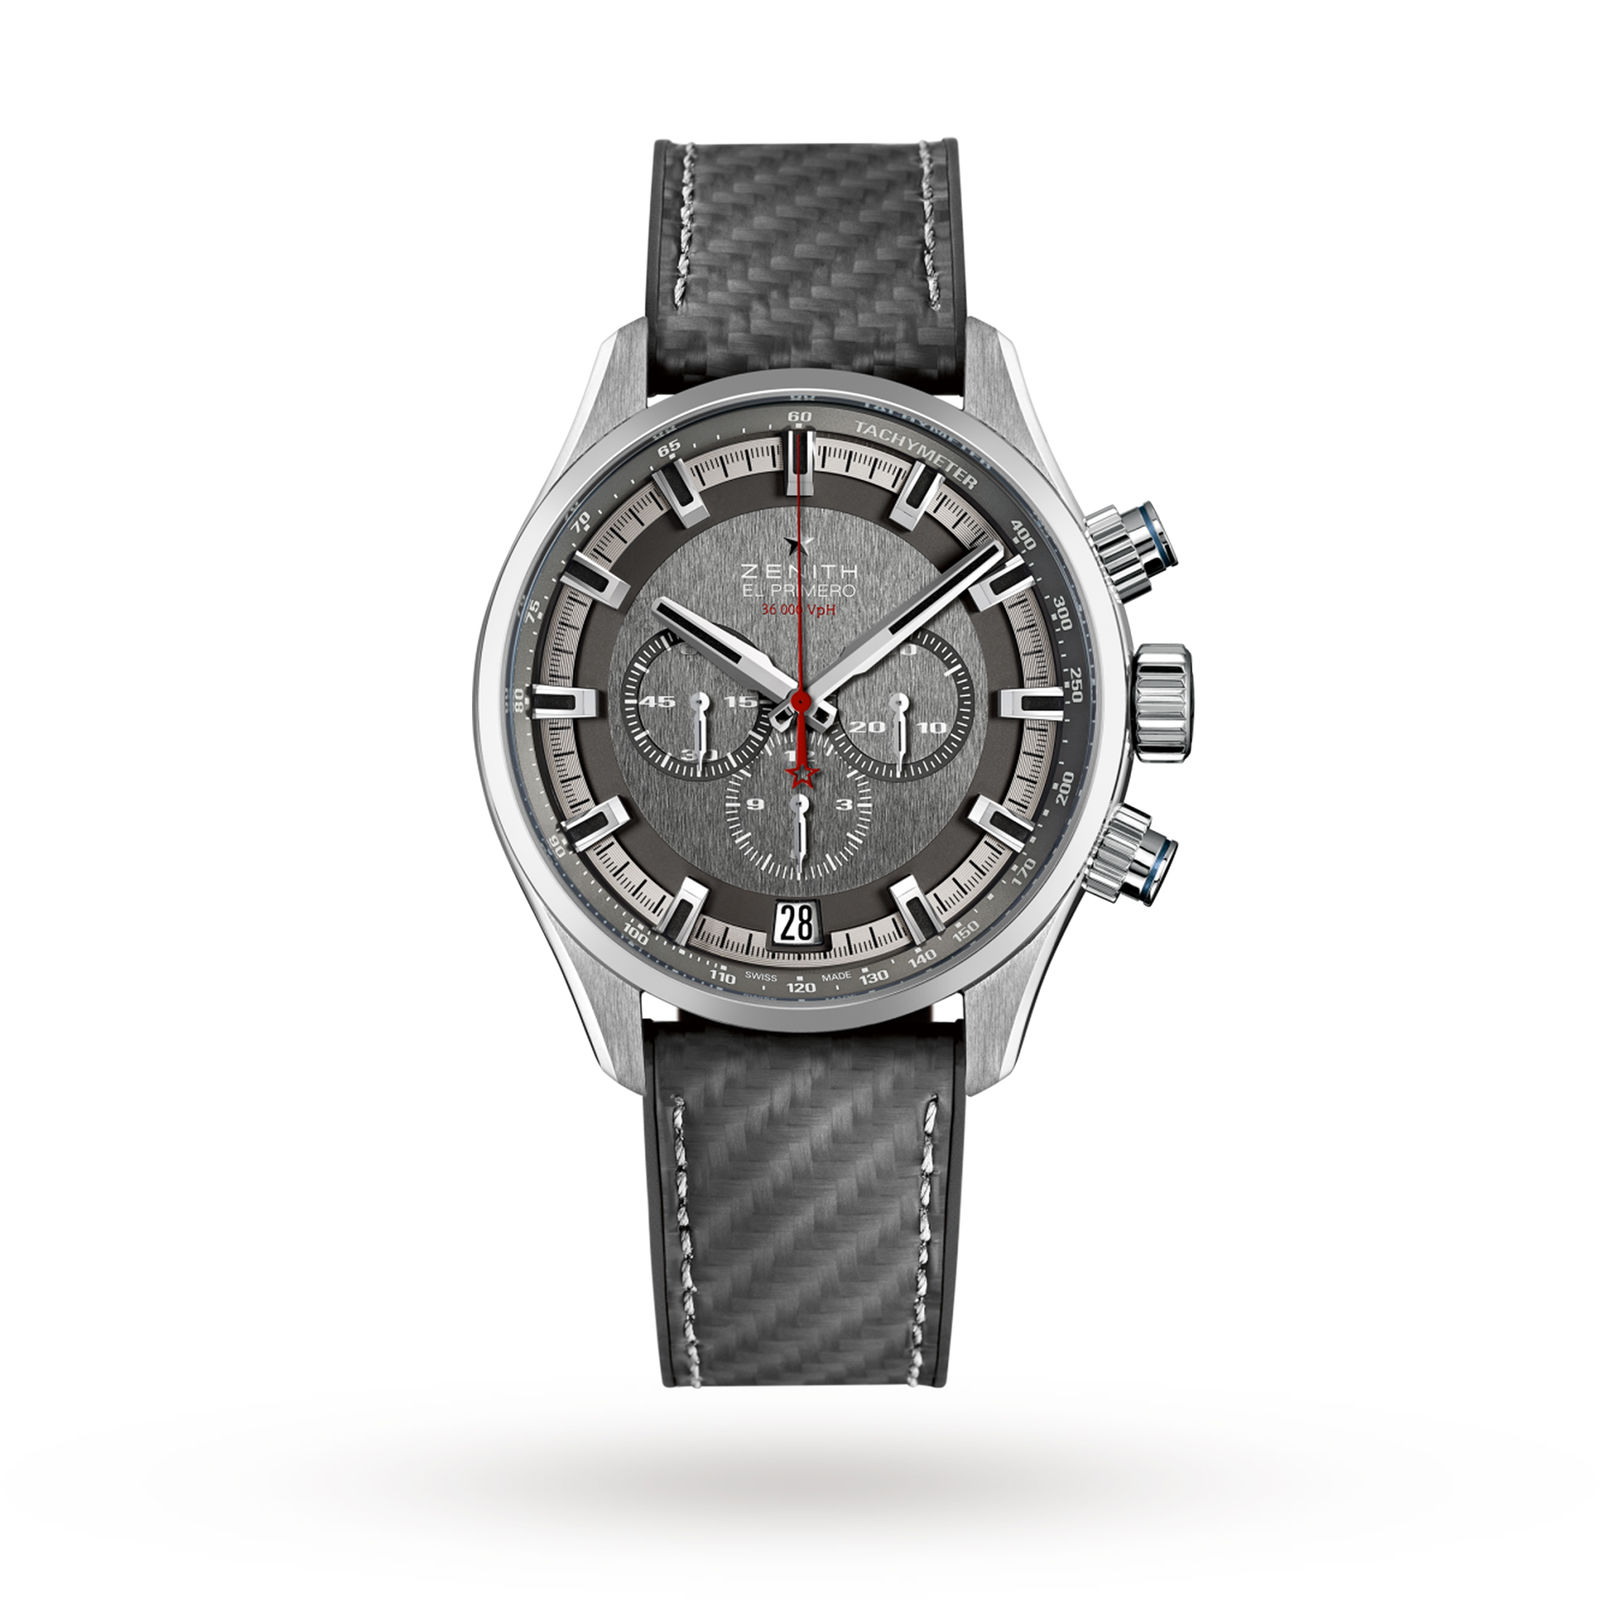 Zenith Range Rover (BAR EDITION) Men's Watch